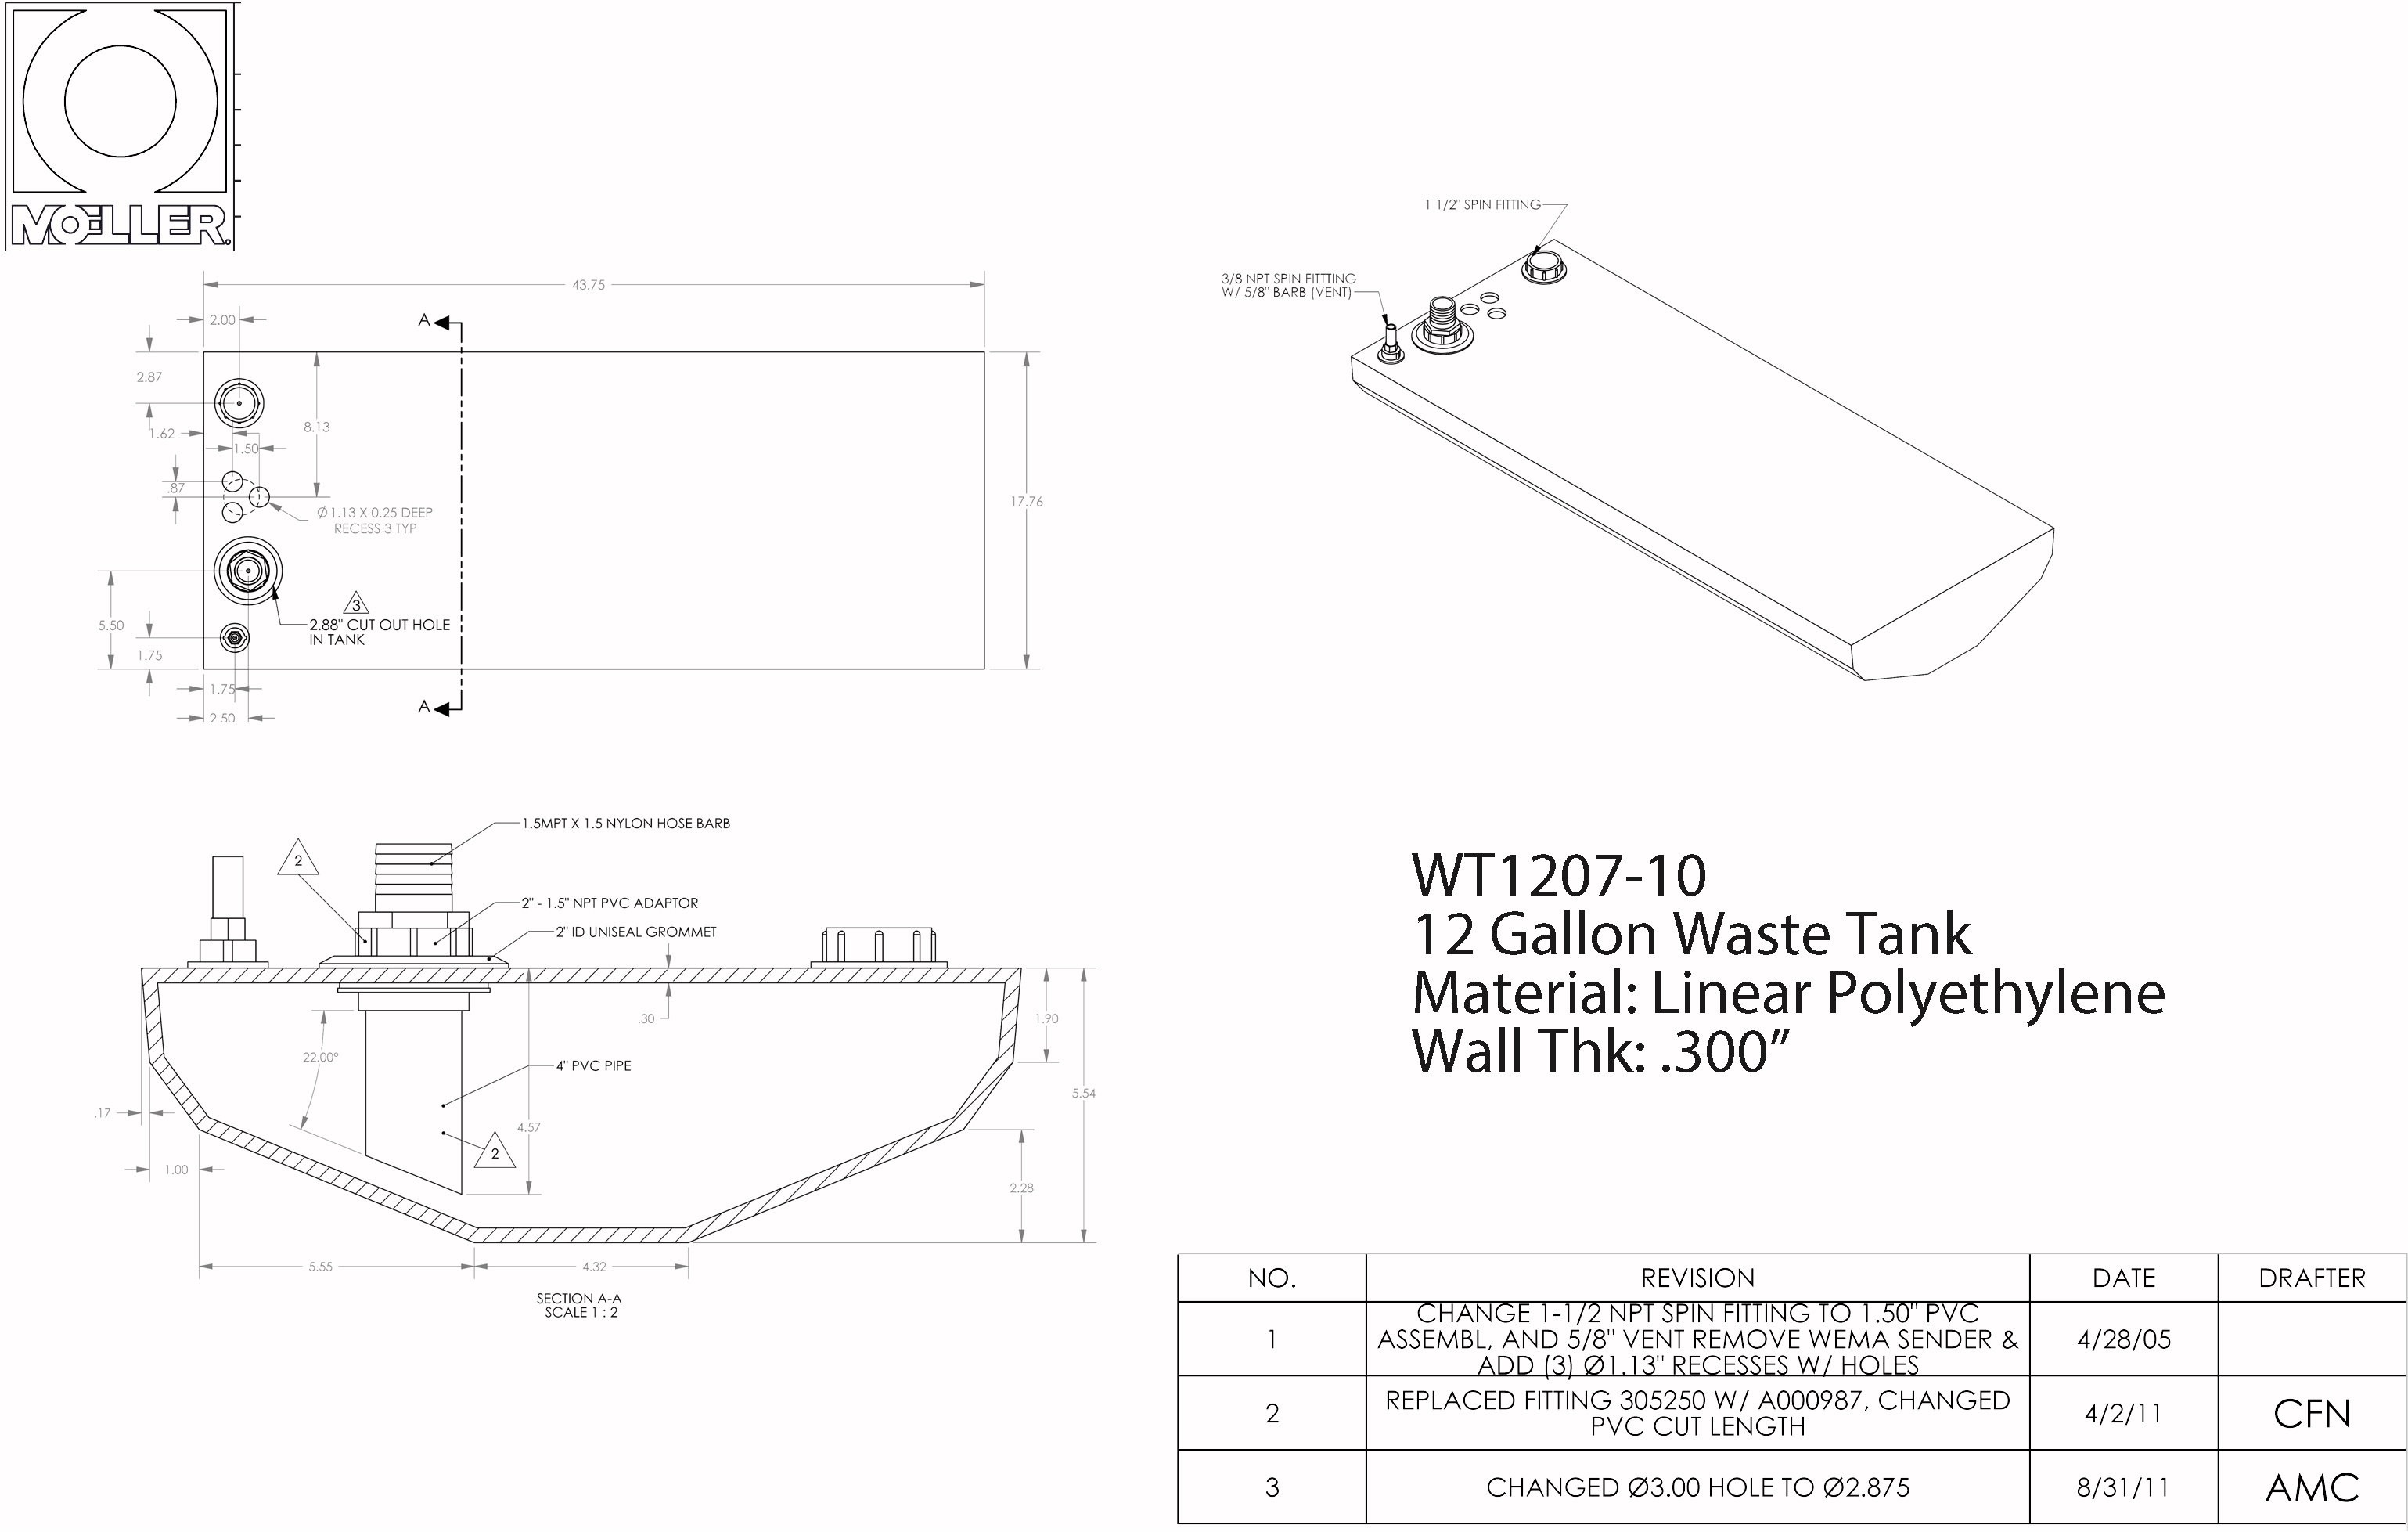 12 Gallon Belly Shaped Waste/Water Tank, 43.75″x17.76″x5.54″, WT1207-10